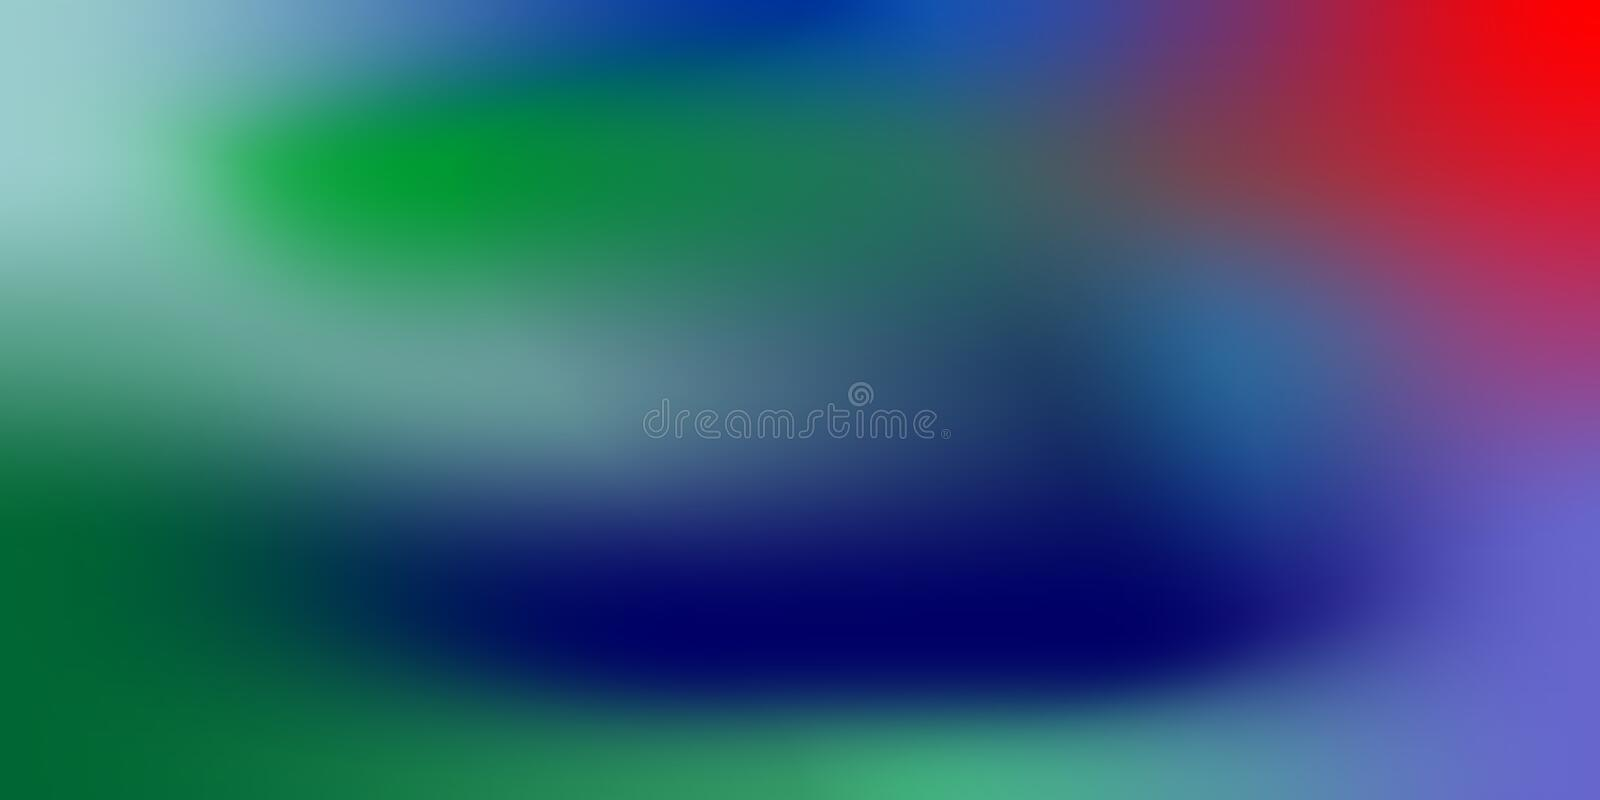 Colorful blur abstract background vector design, colorful blurred shaded background, vivid color vector illustration. Many uses for advertising, book page vector illustration